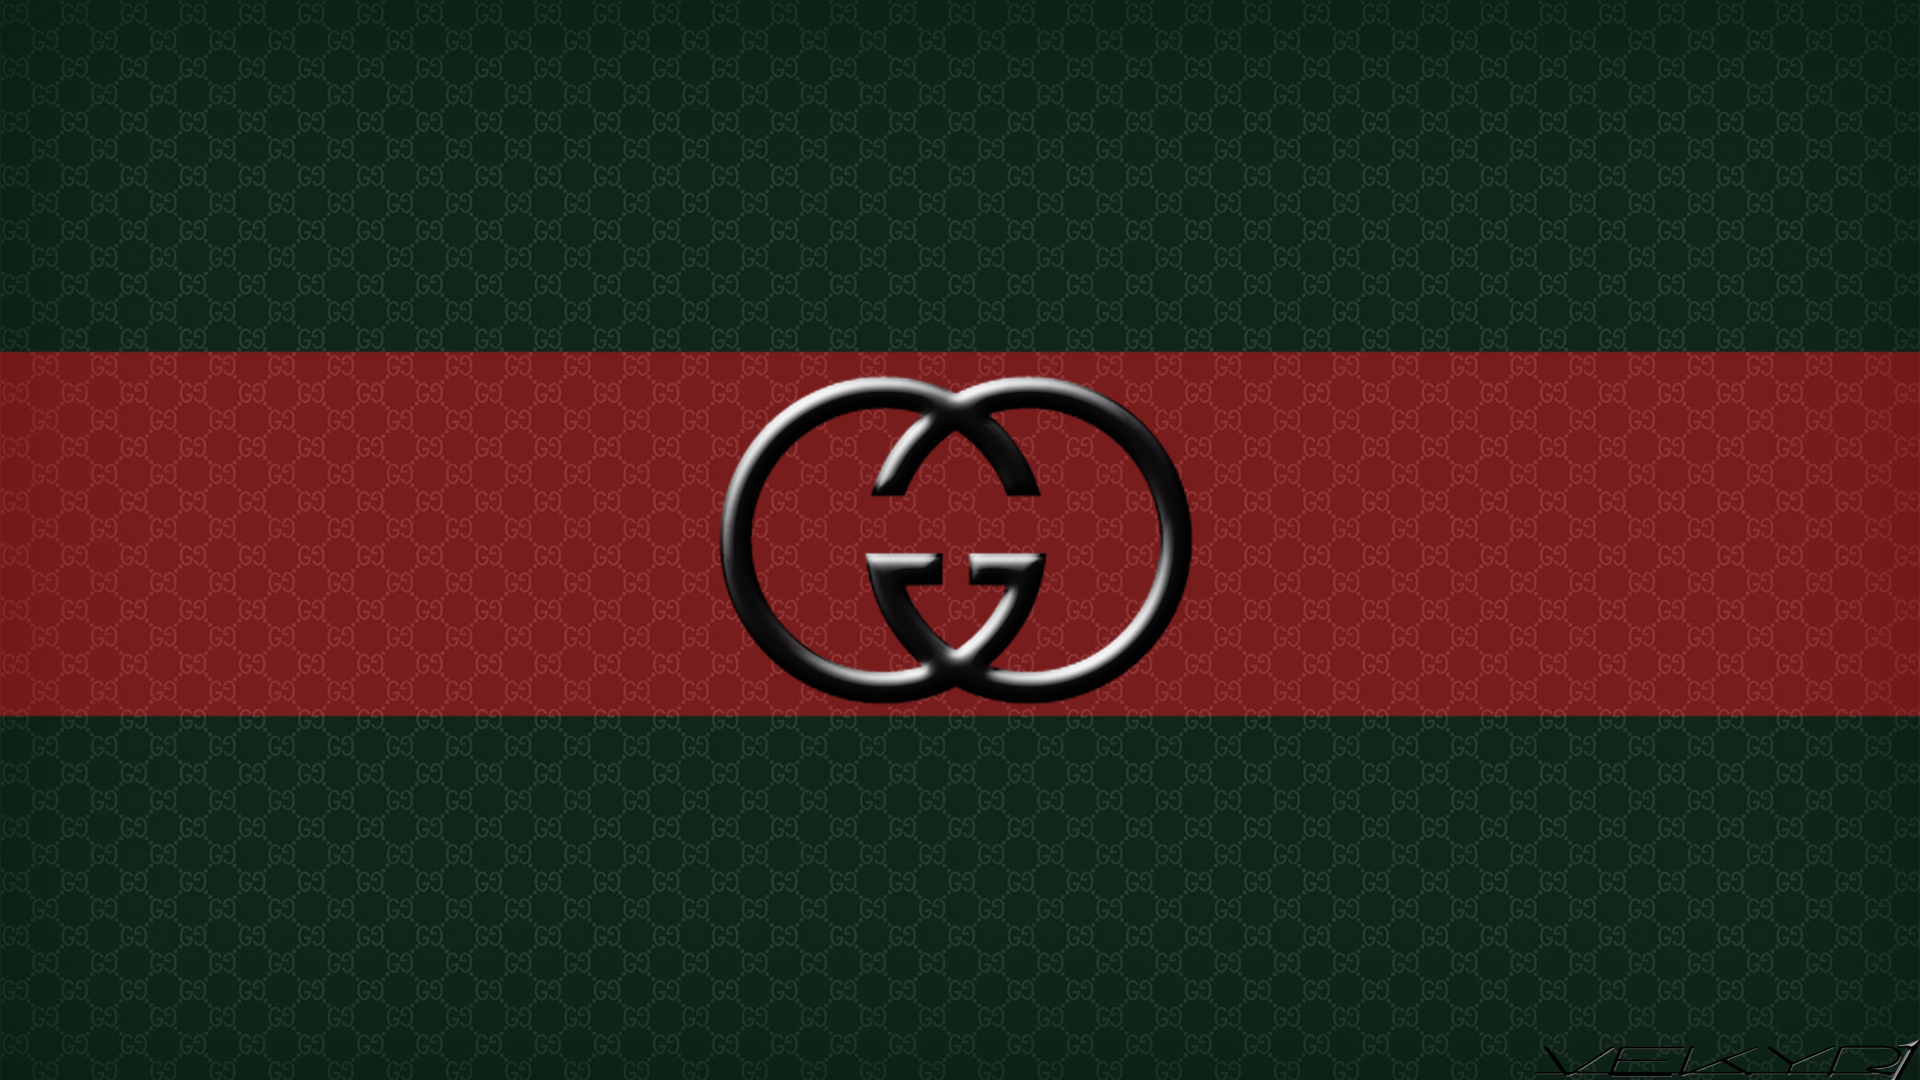 Gucci Nice Pictures